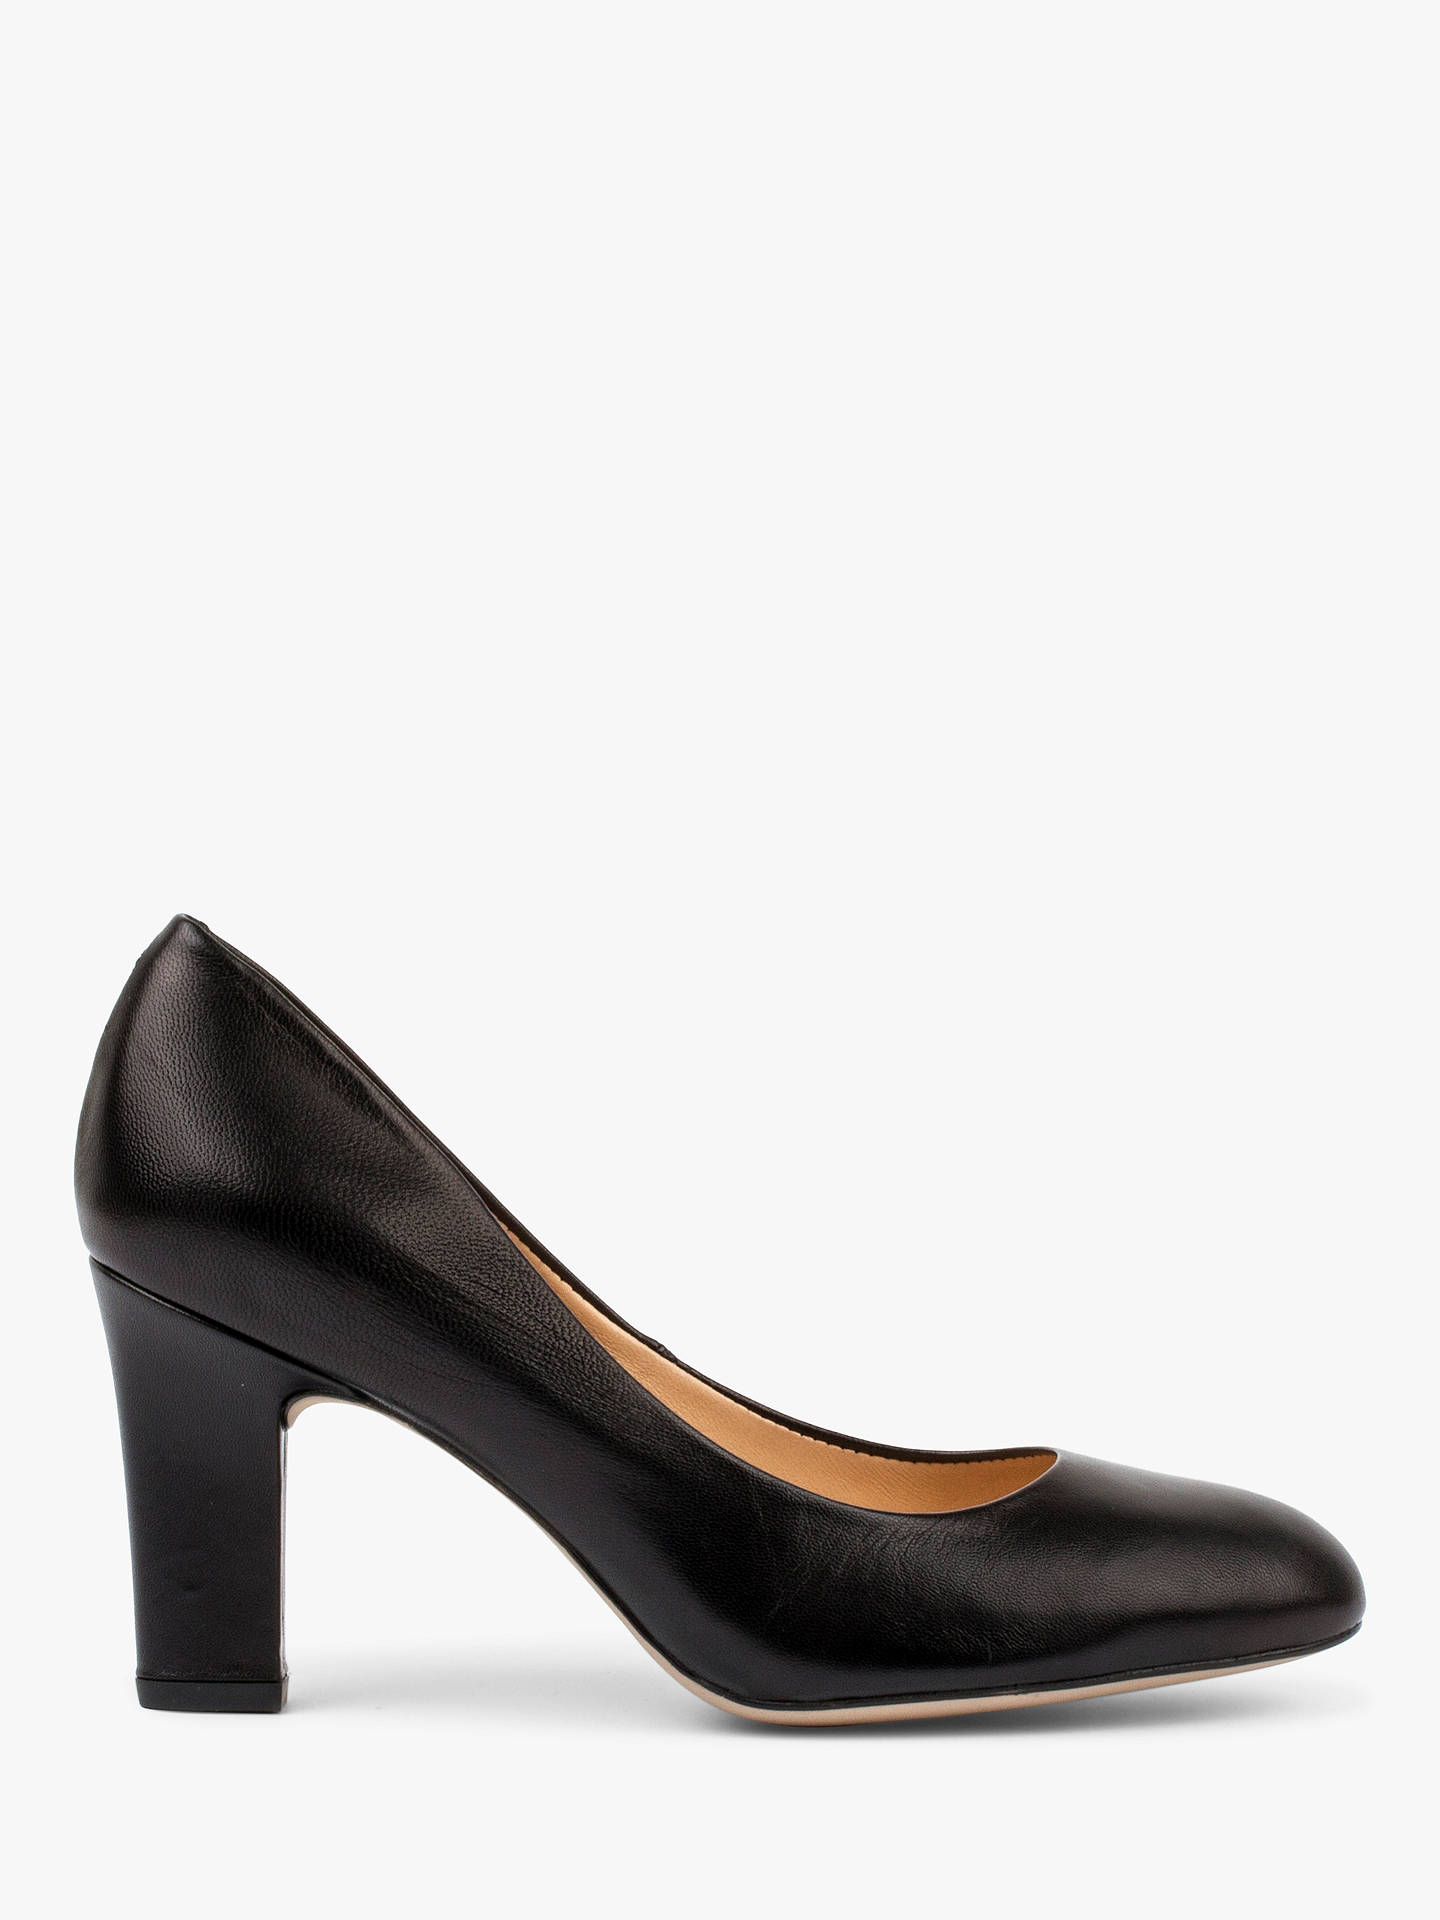 da6880cf7aba1 Buy Unisa Umis Comfort Patent Leather Court Shoes